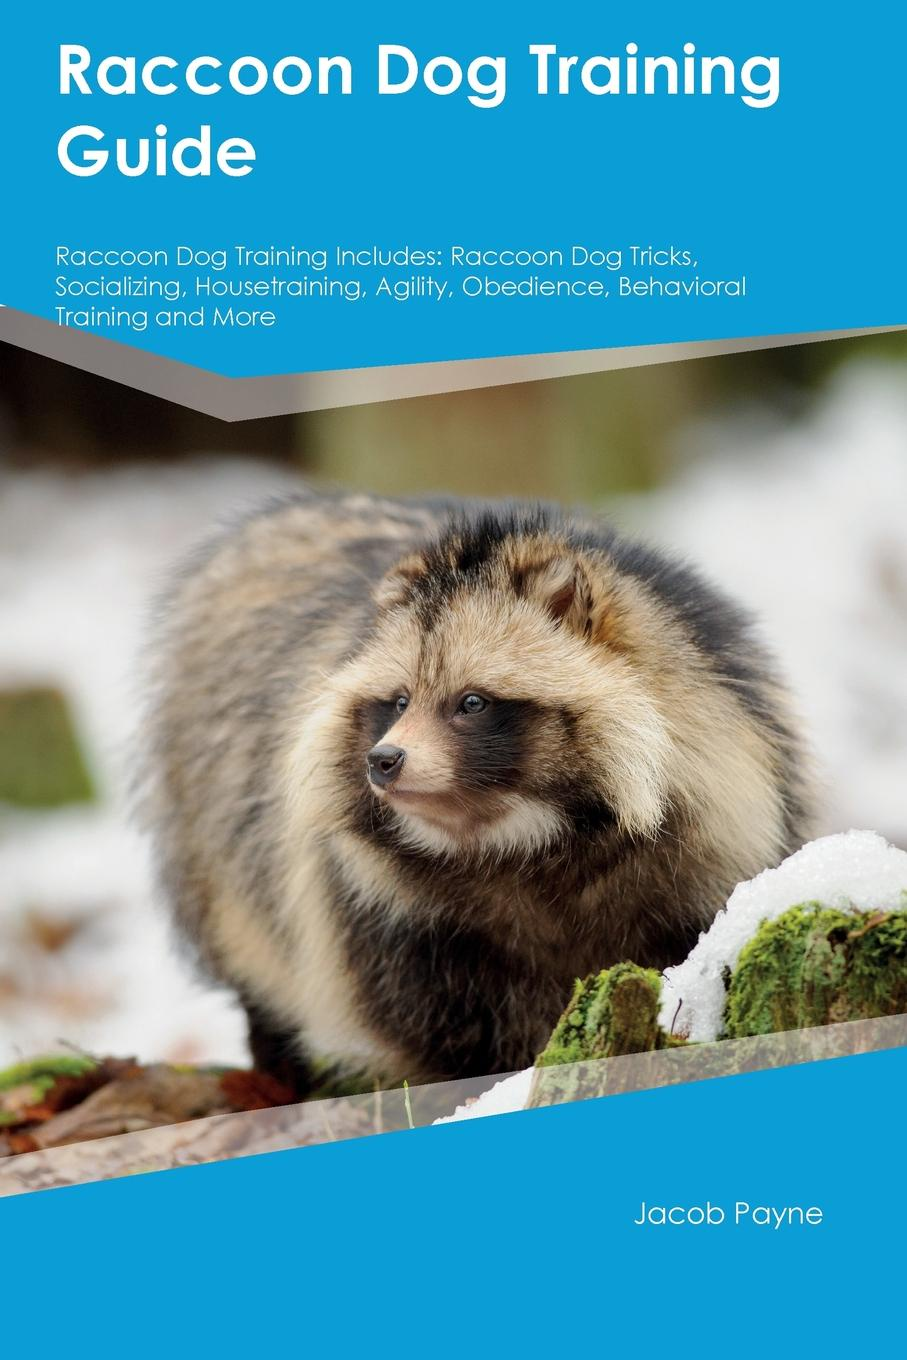 Justin Stewart Raccoon Dog Training Guide Includes. Tricks, Socializing, Housetraining, Agility, Obedience, Behavioral and More